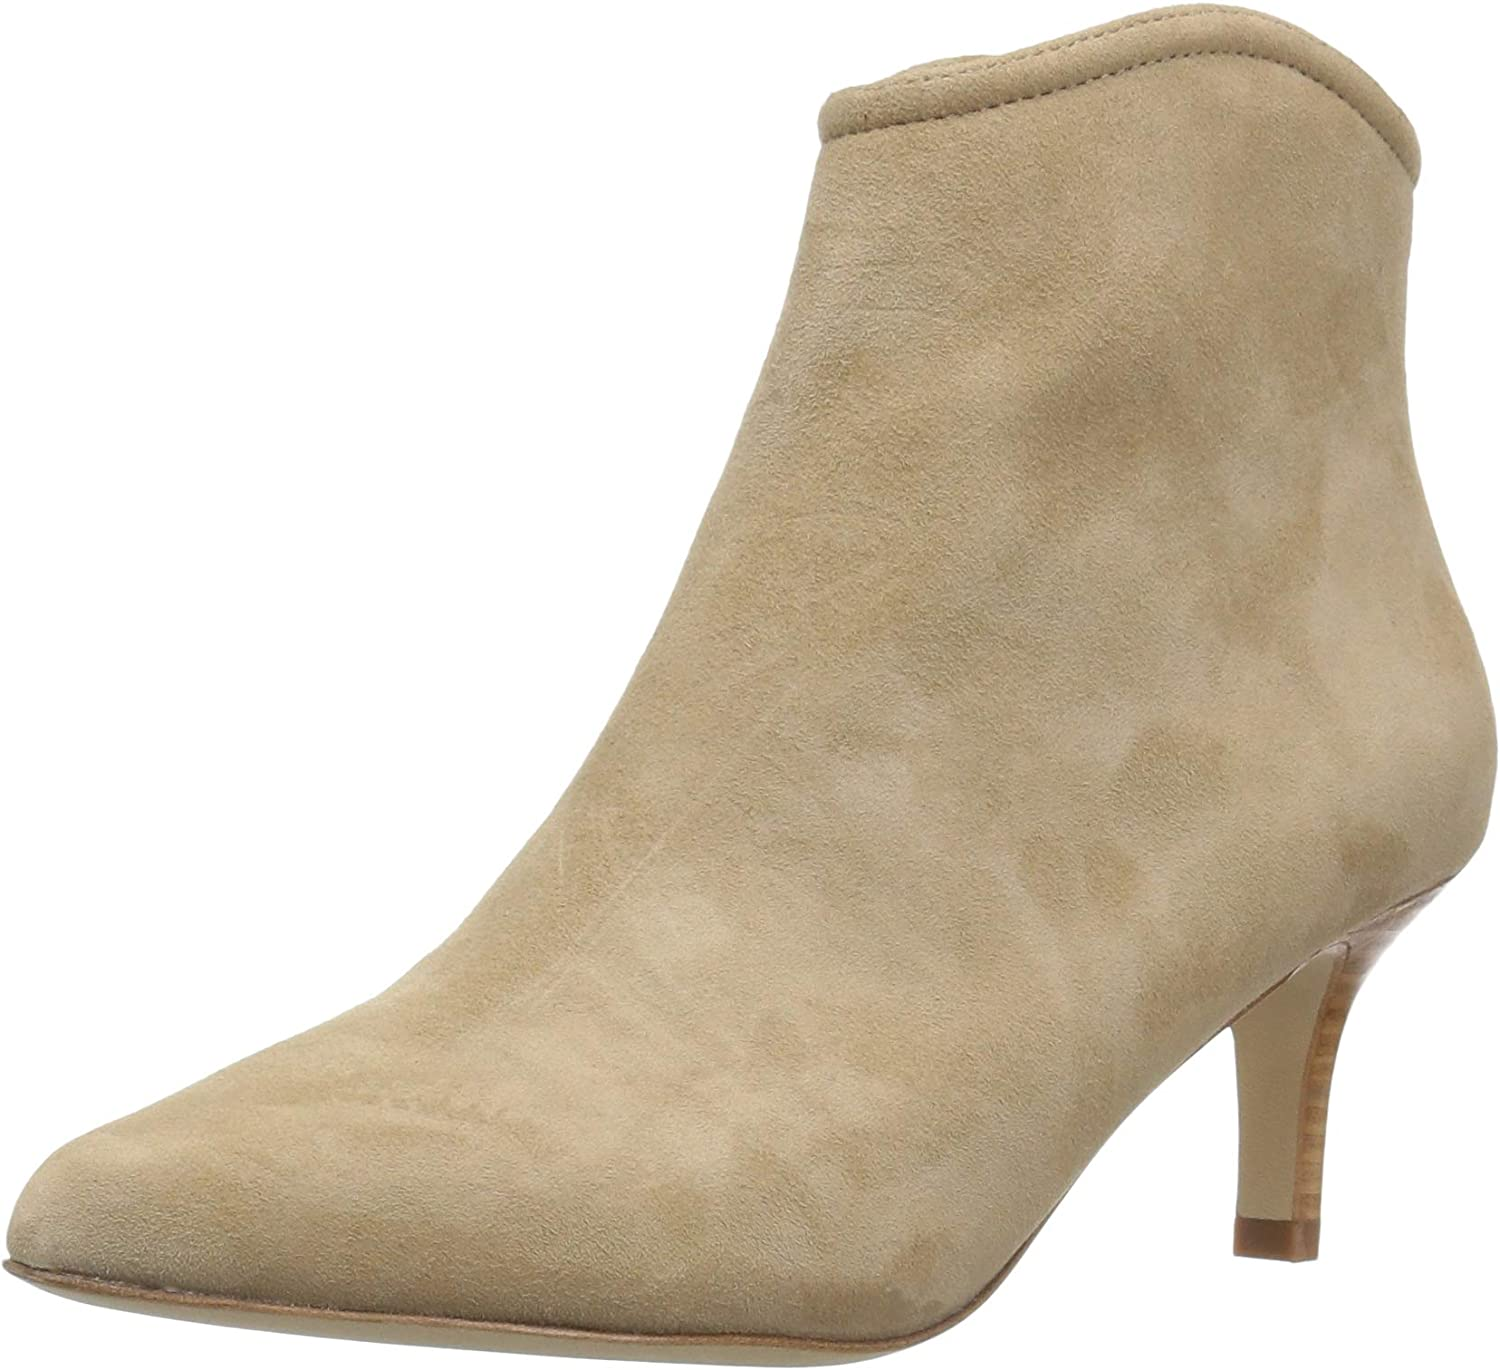 Joie Womens Ralean Ankle Boot